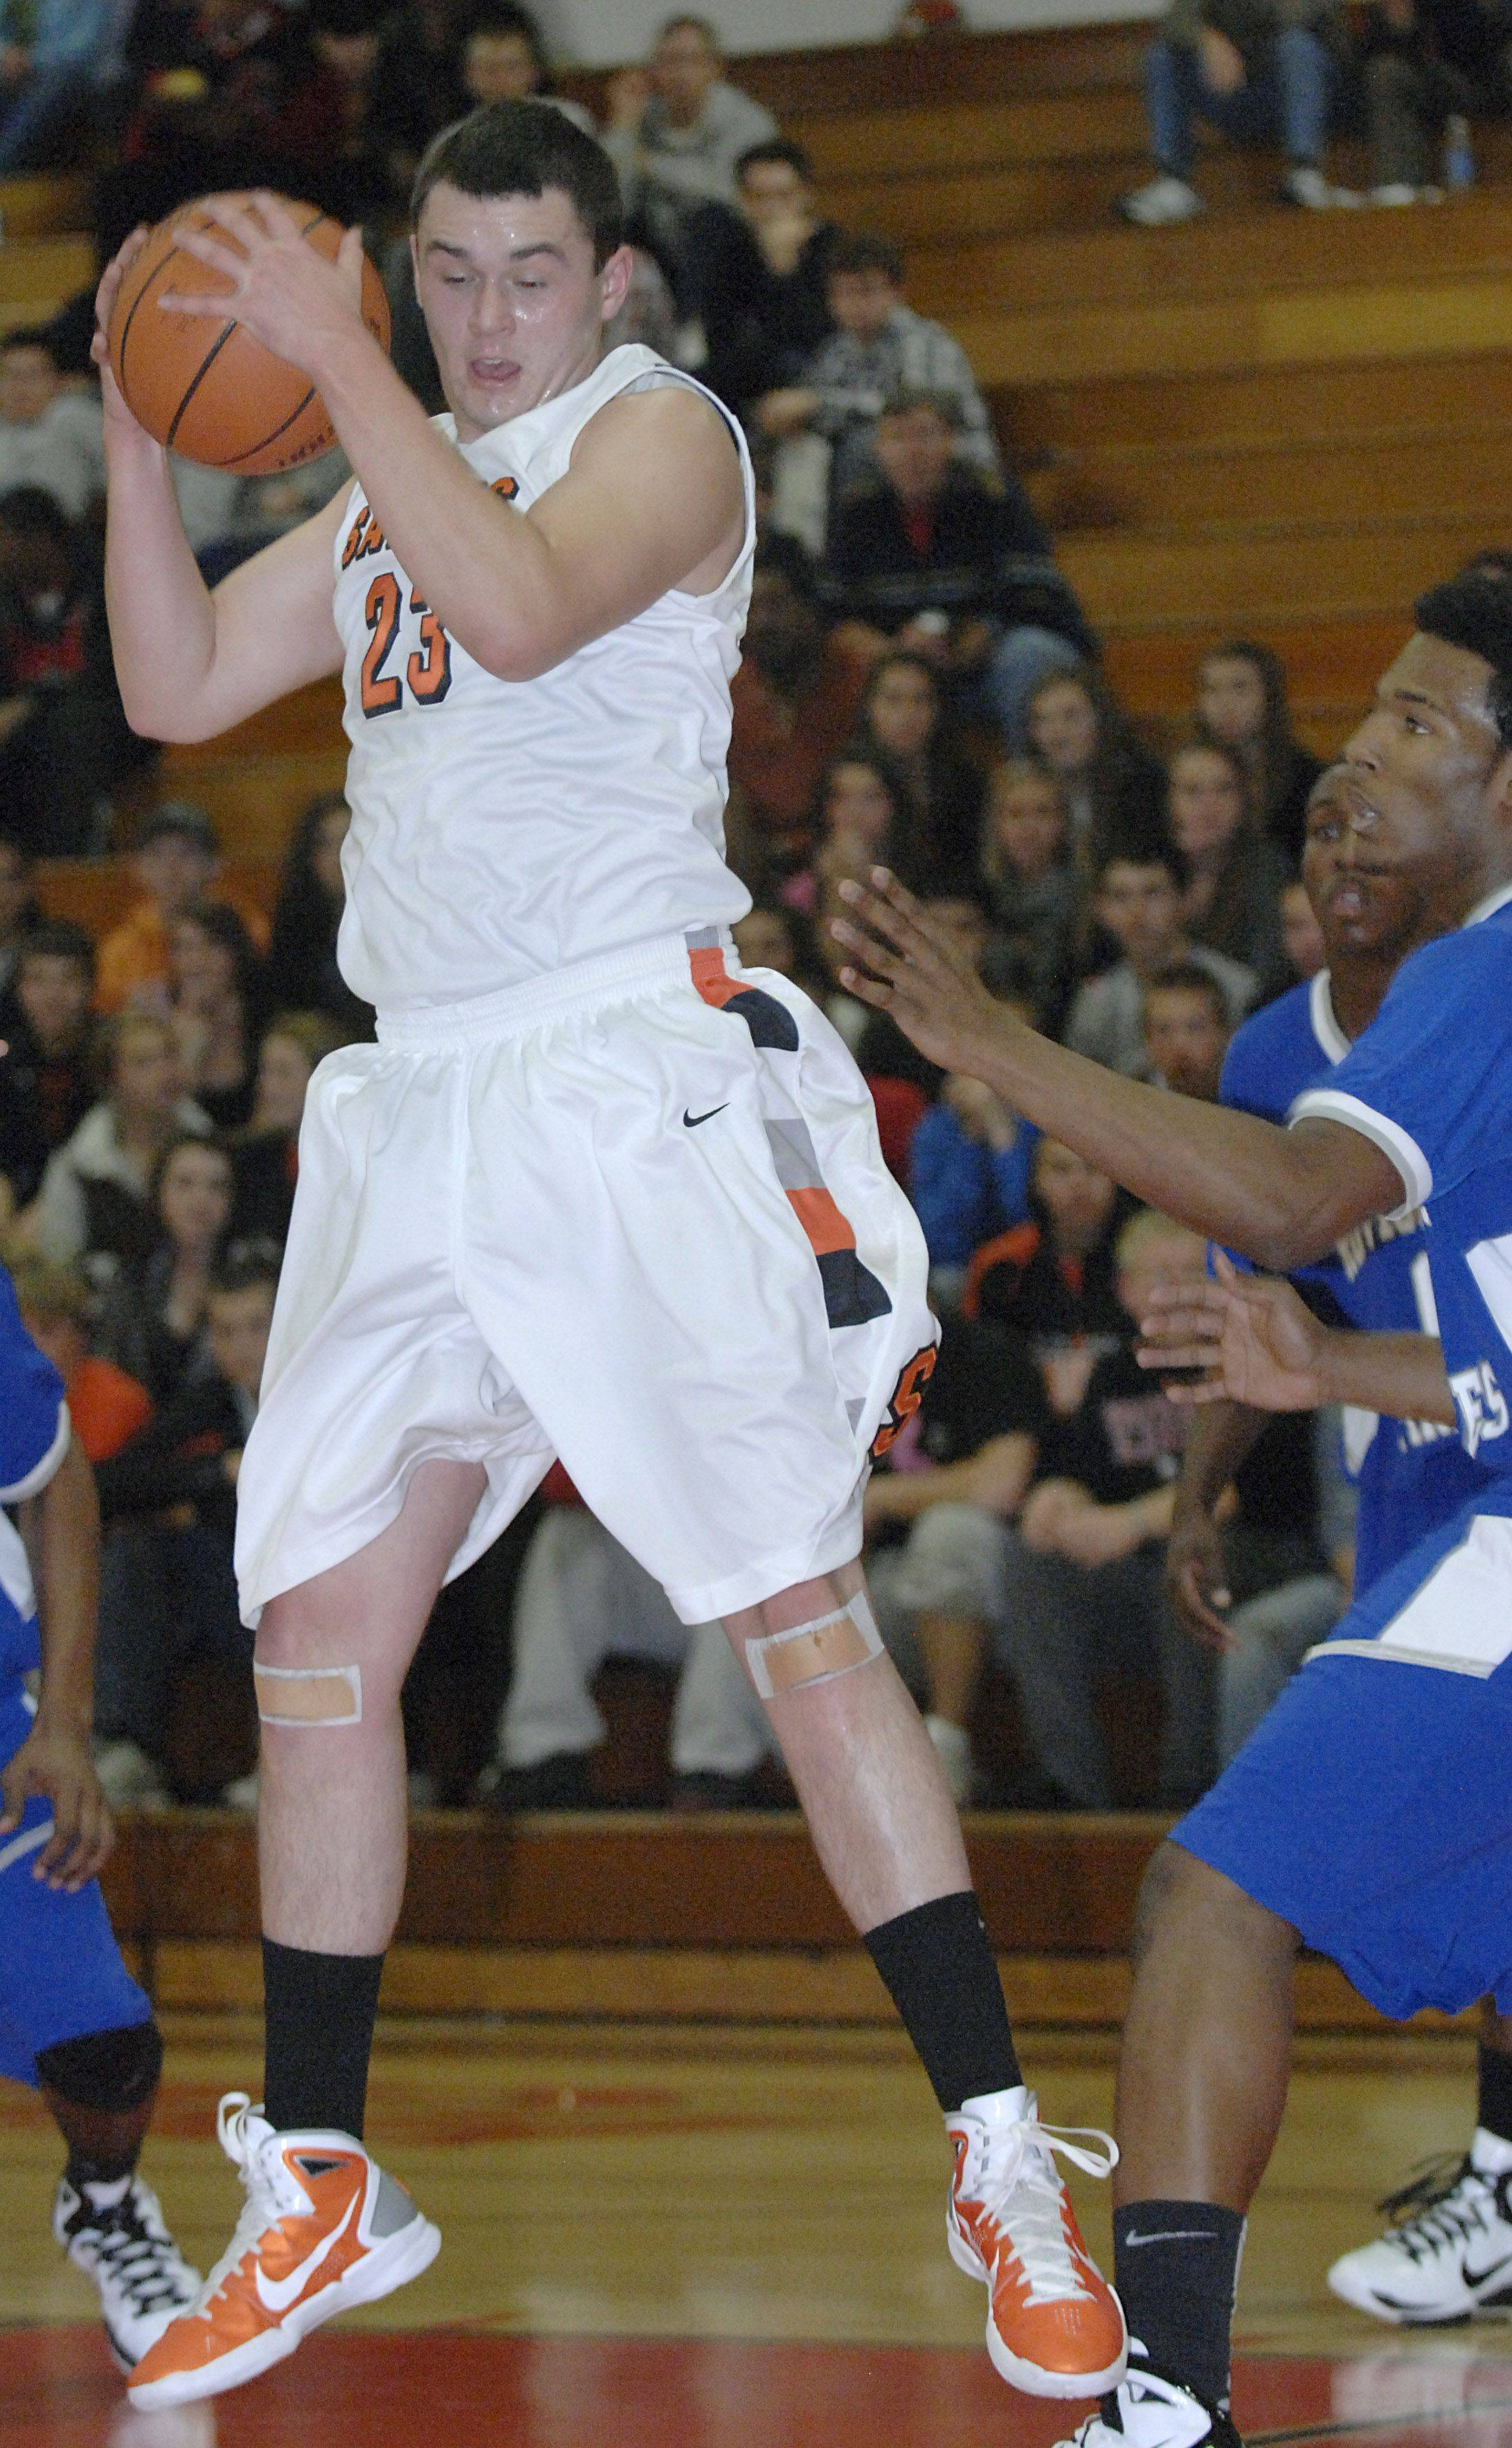 St. Charles East's Johnny Hondlik snatches a rebound in tournament game vs Proviso East on Tuesday, November 22.